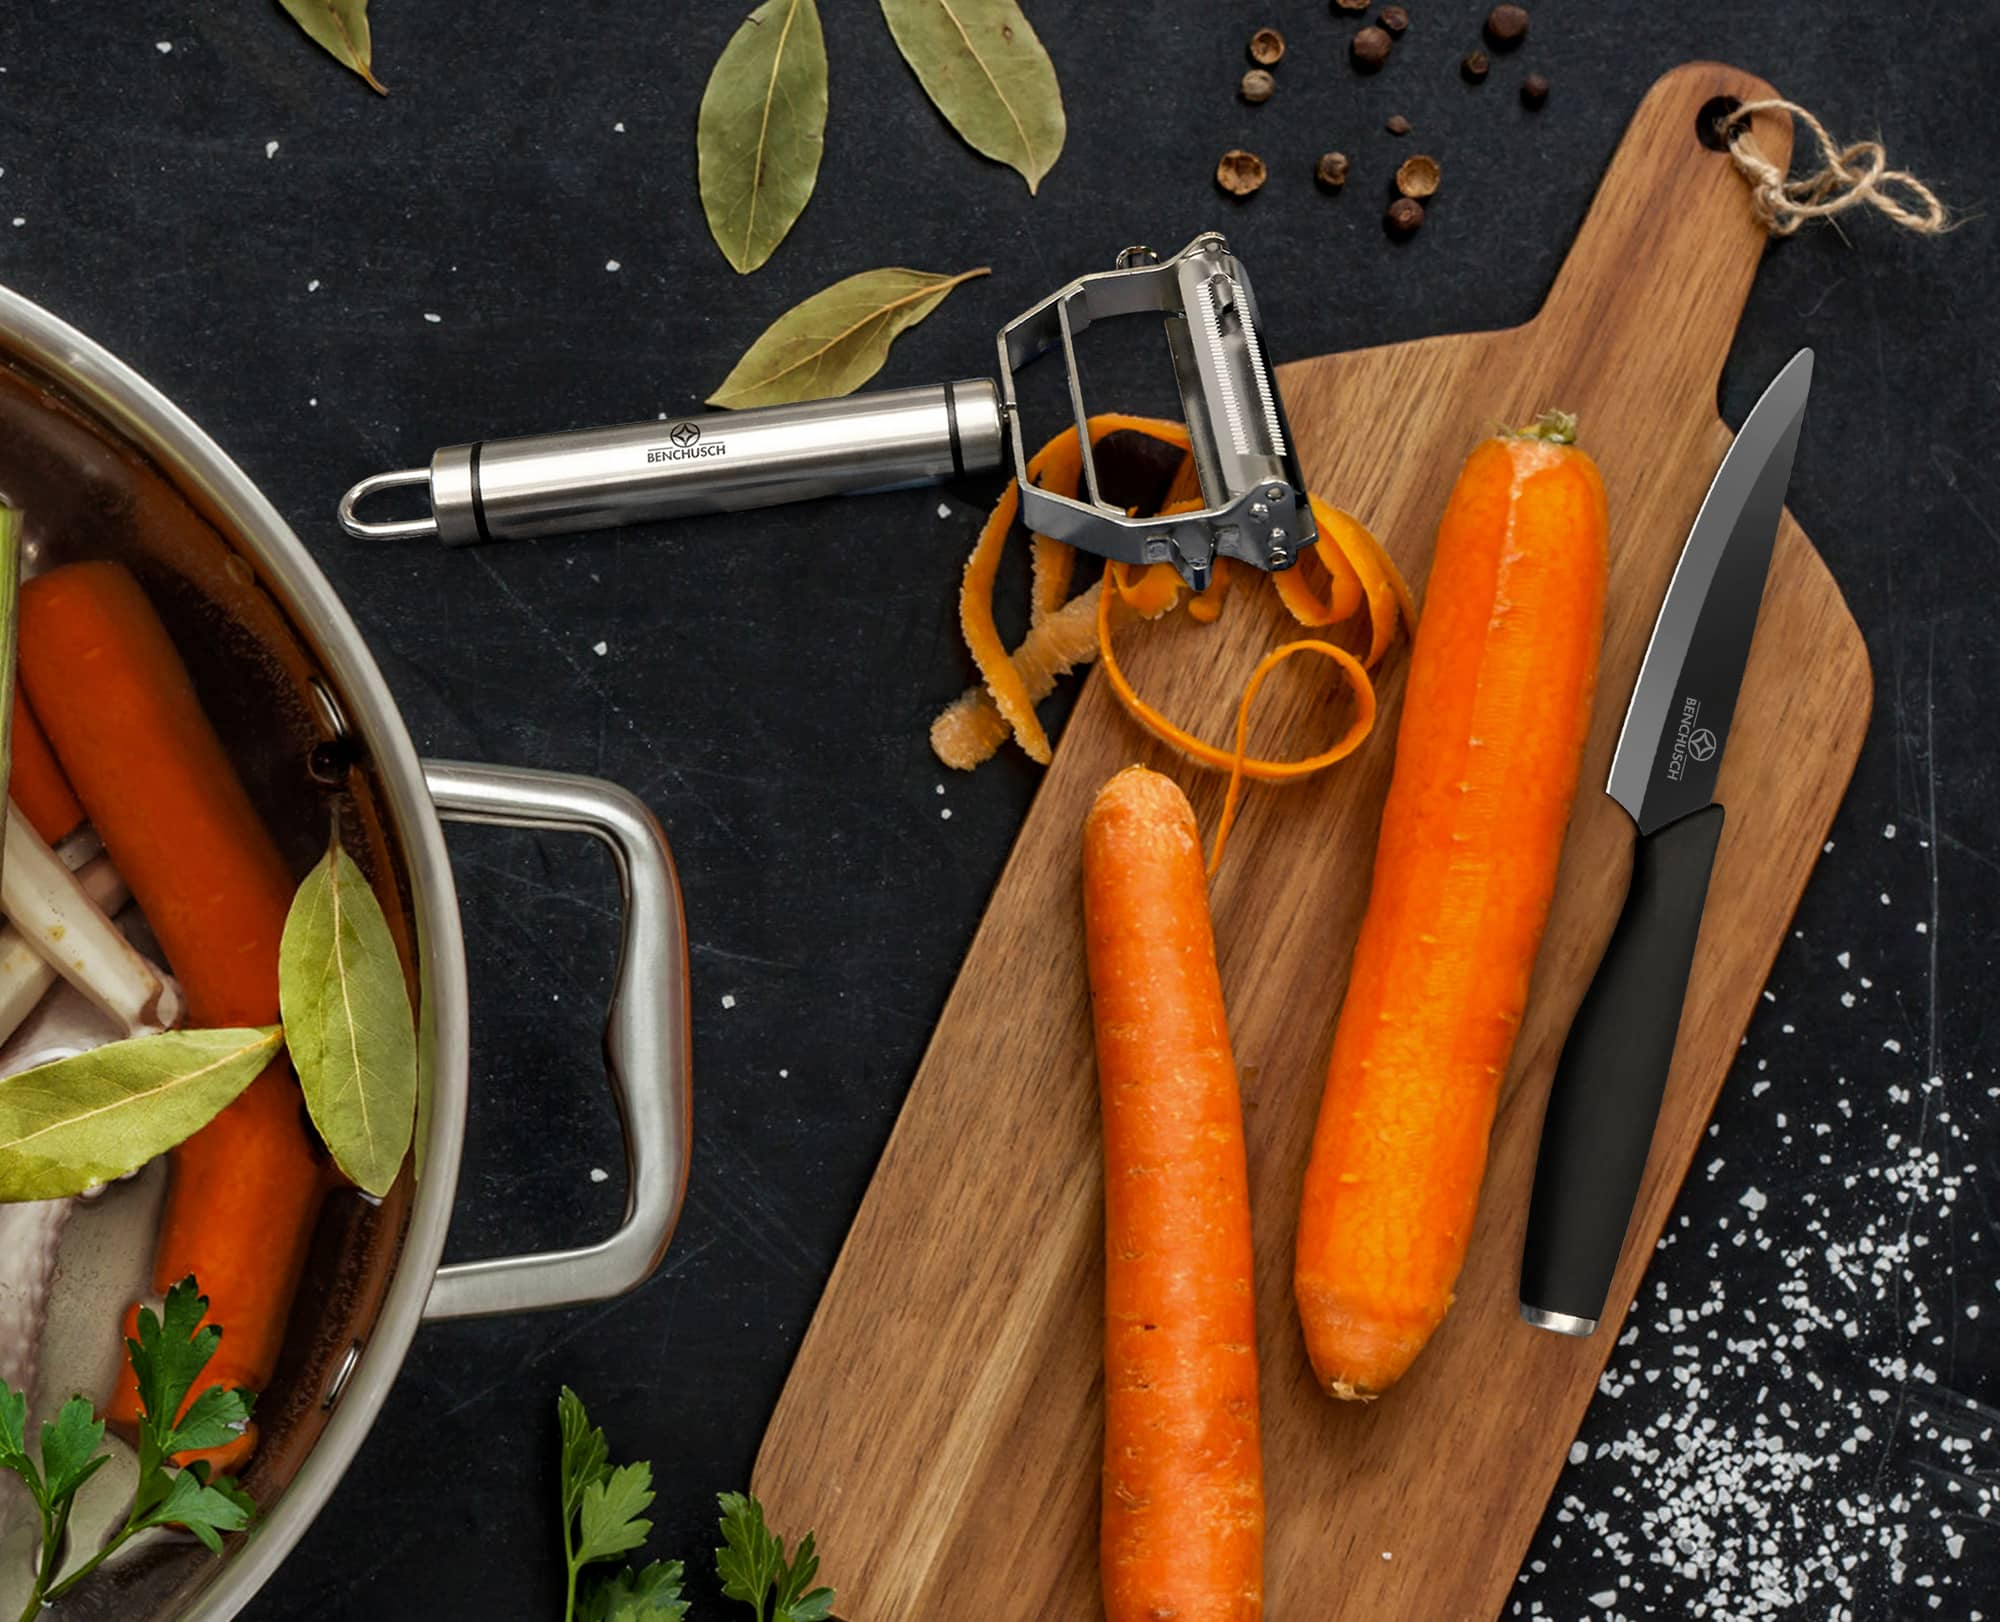 Peeling Carrot with Benchusch Zirconia Series Vegetable Peeler & Ceramic Paring Knife on the wooden chopping board